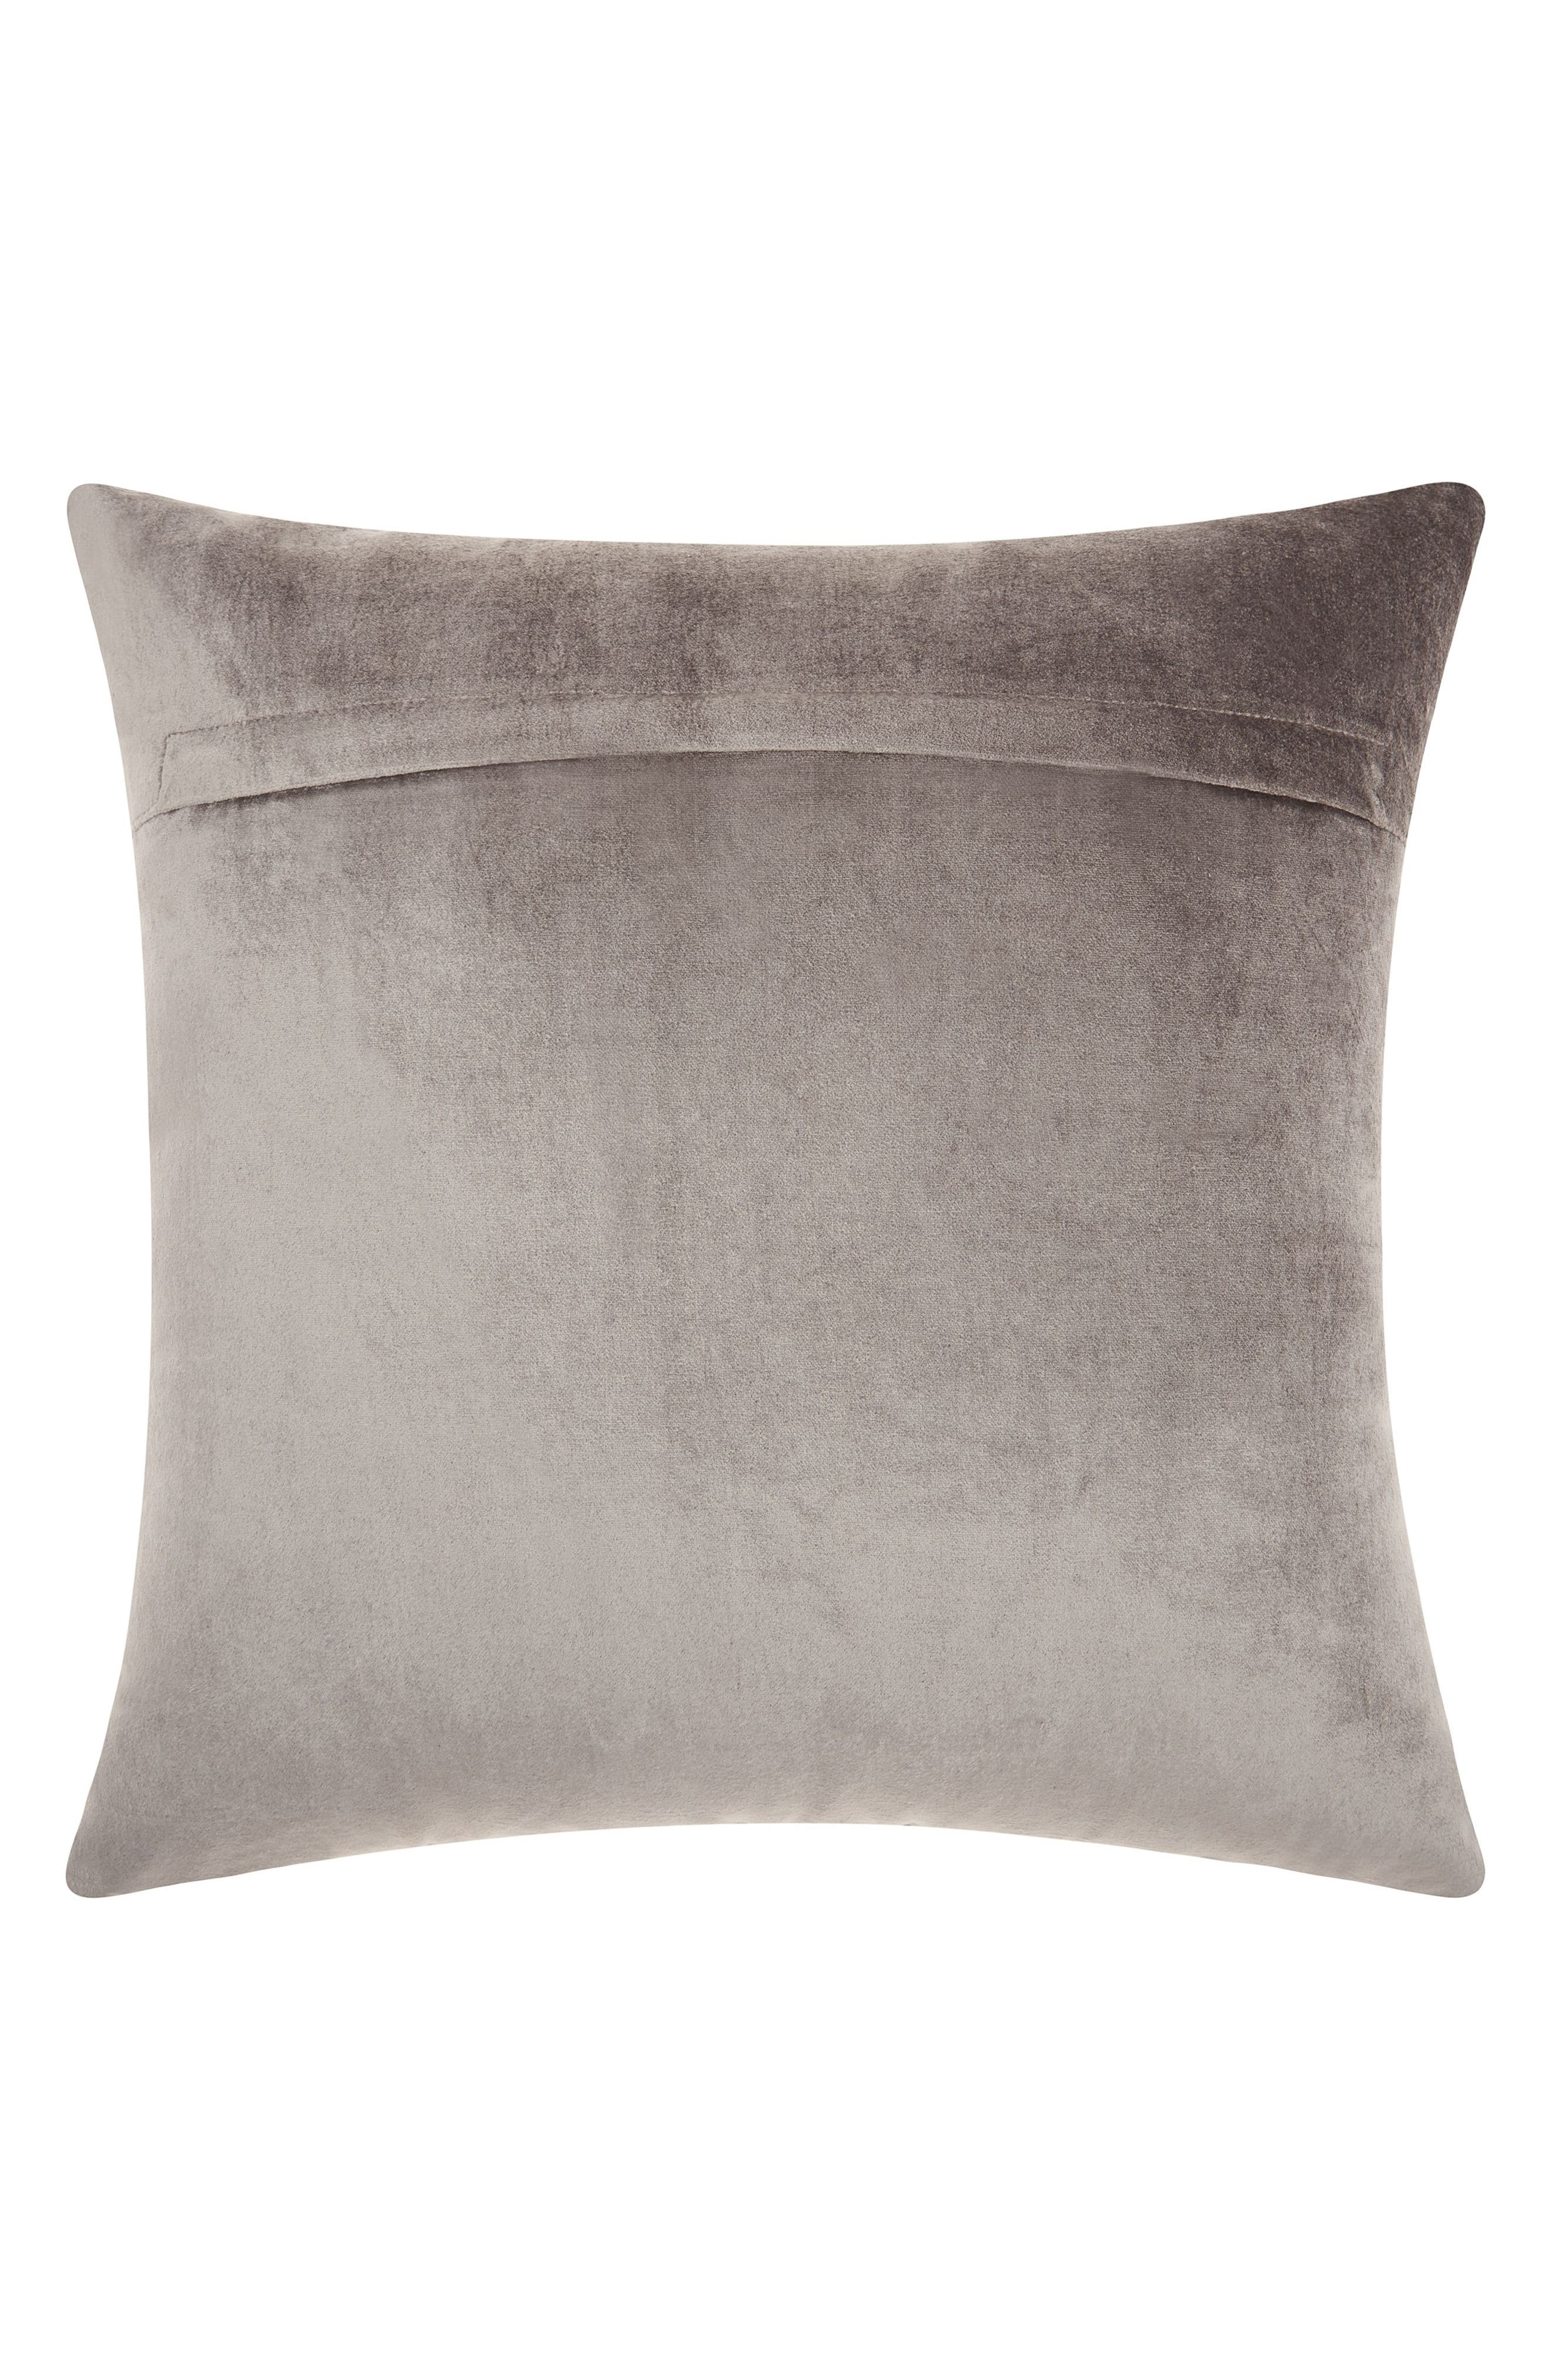 Alternate Image 2  - Mina Victory Distressed Velvet Accent Pillow